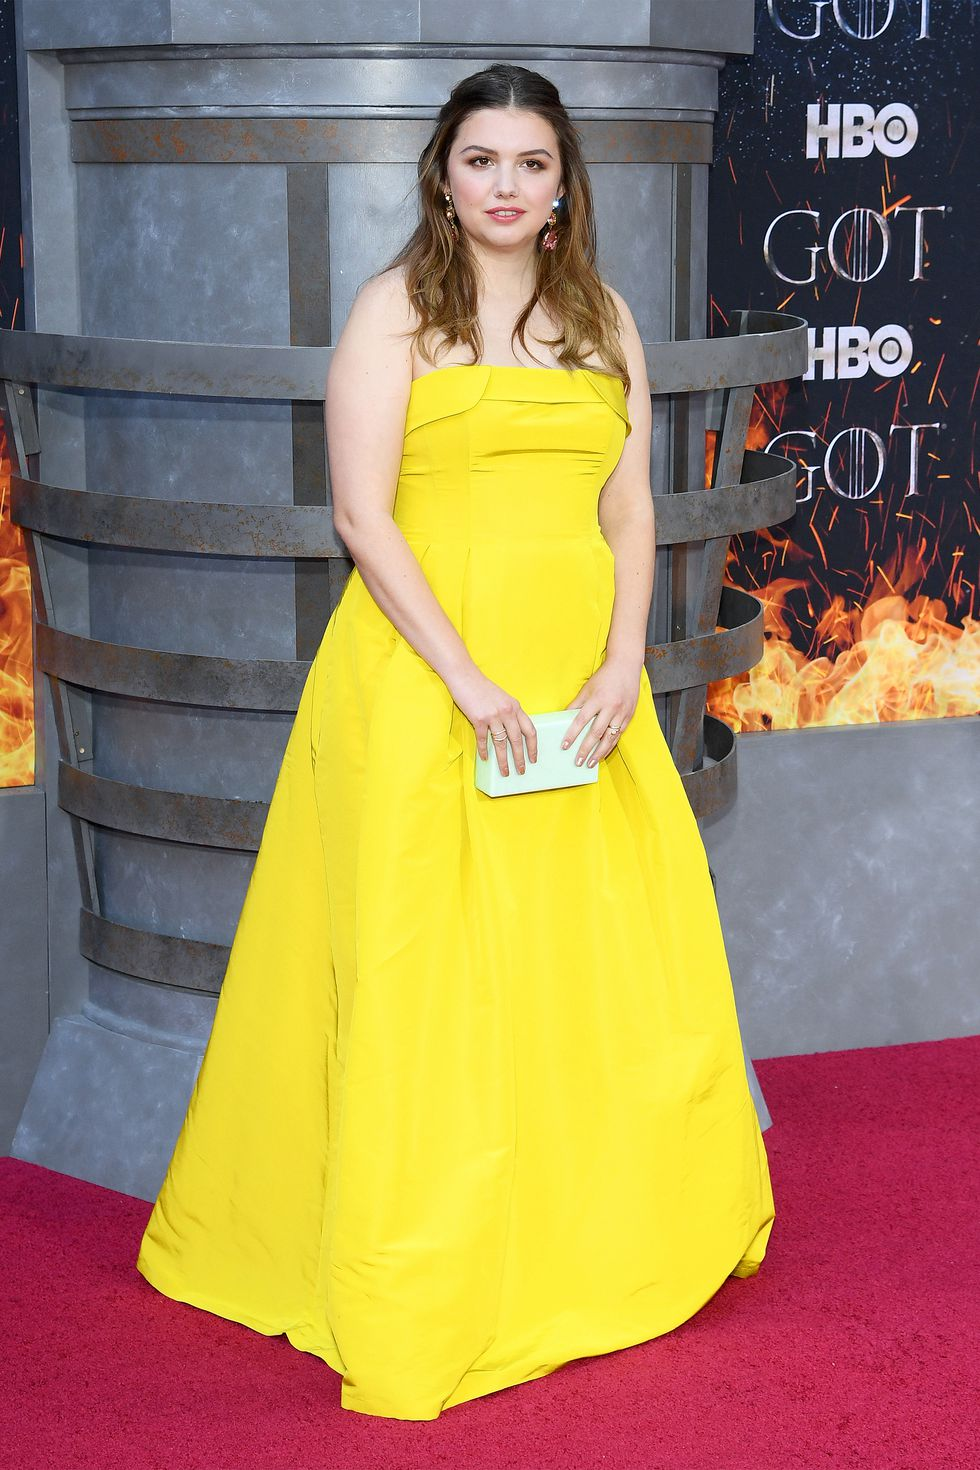 hbz-got-premiere-hannah-murray-1554331888.jpg